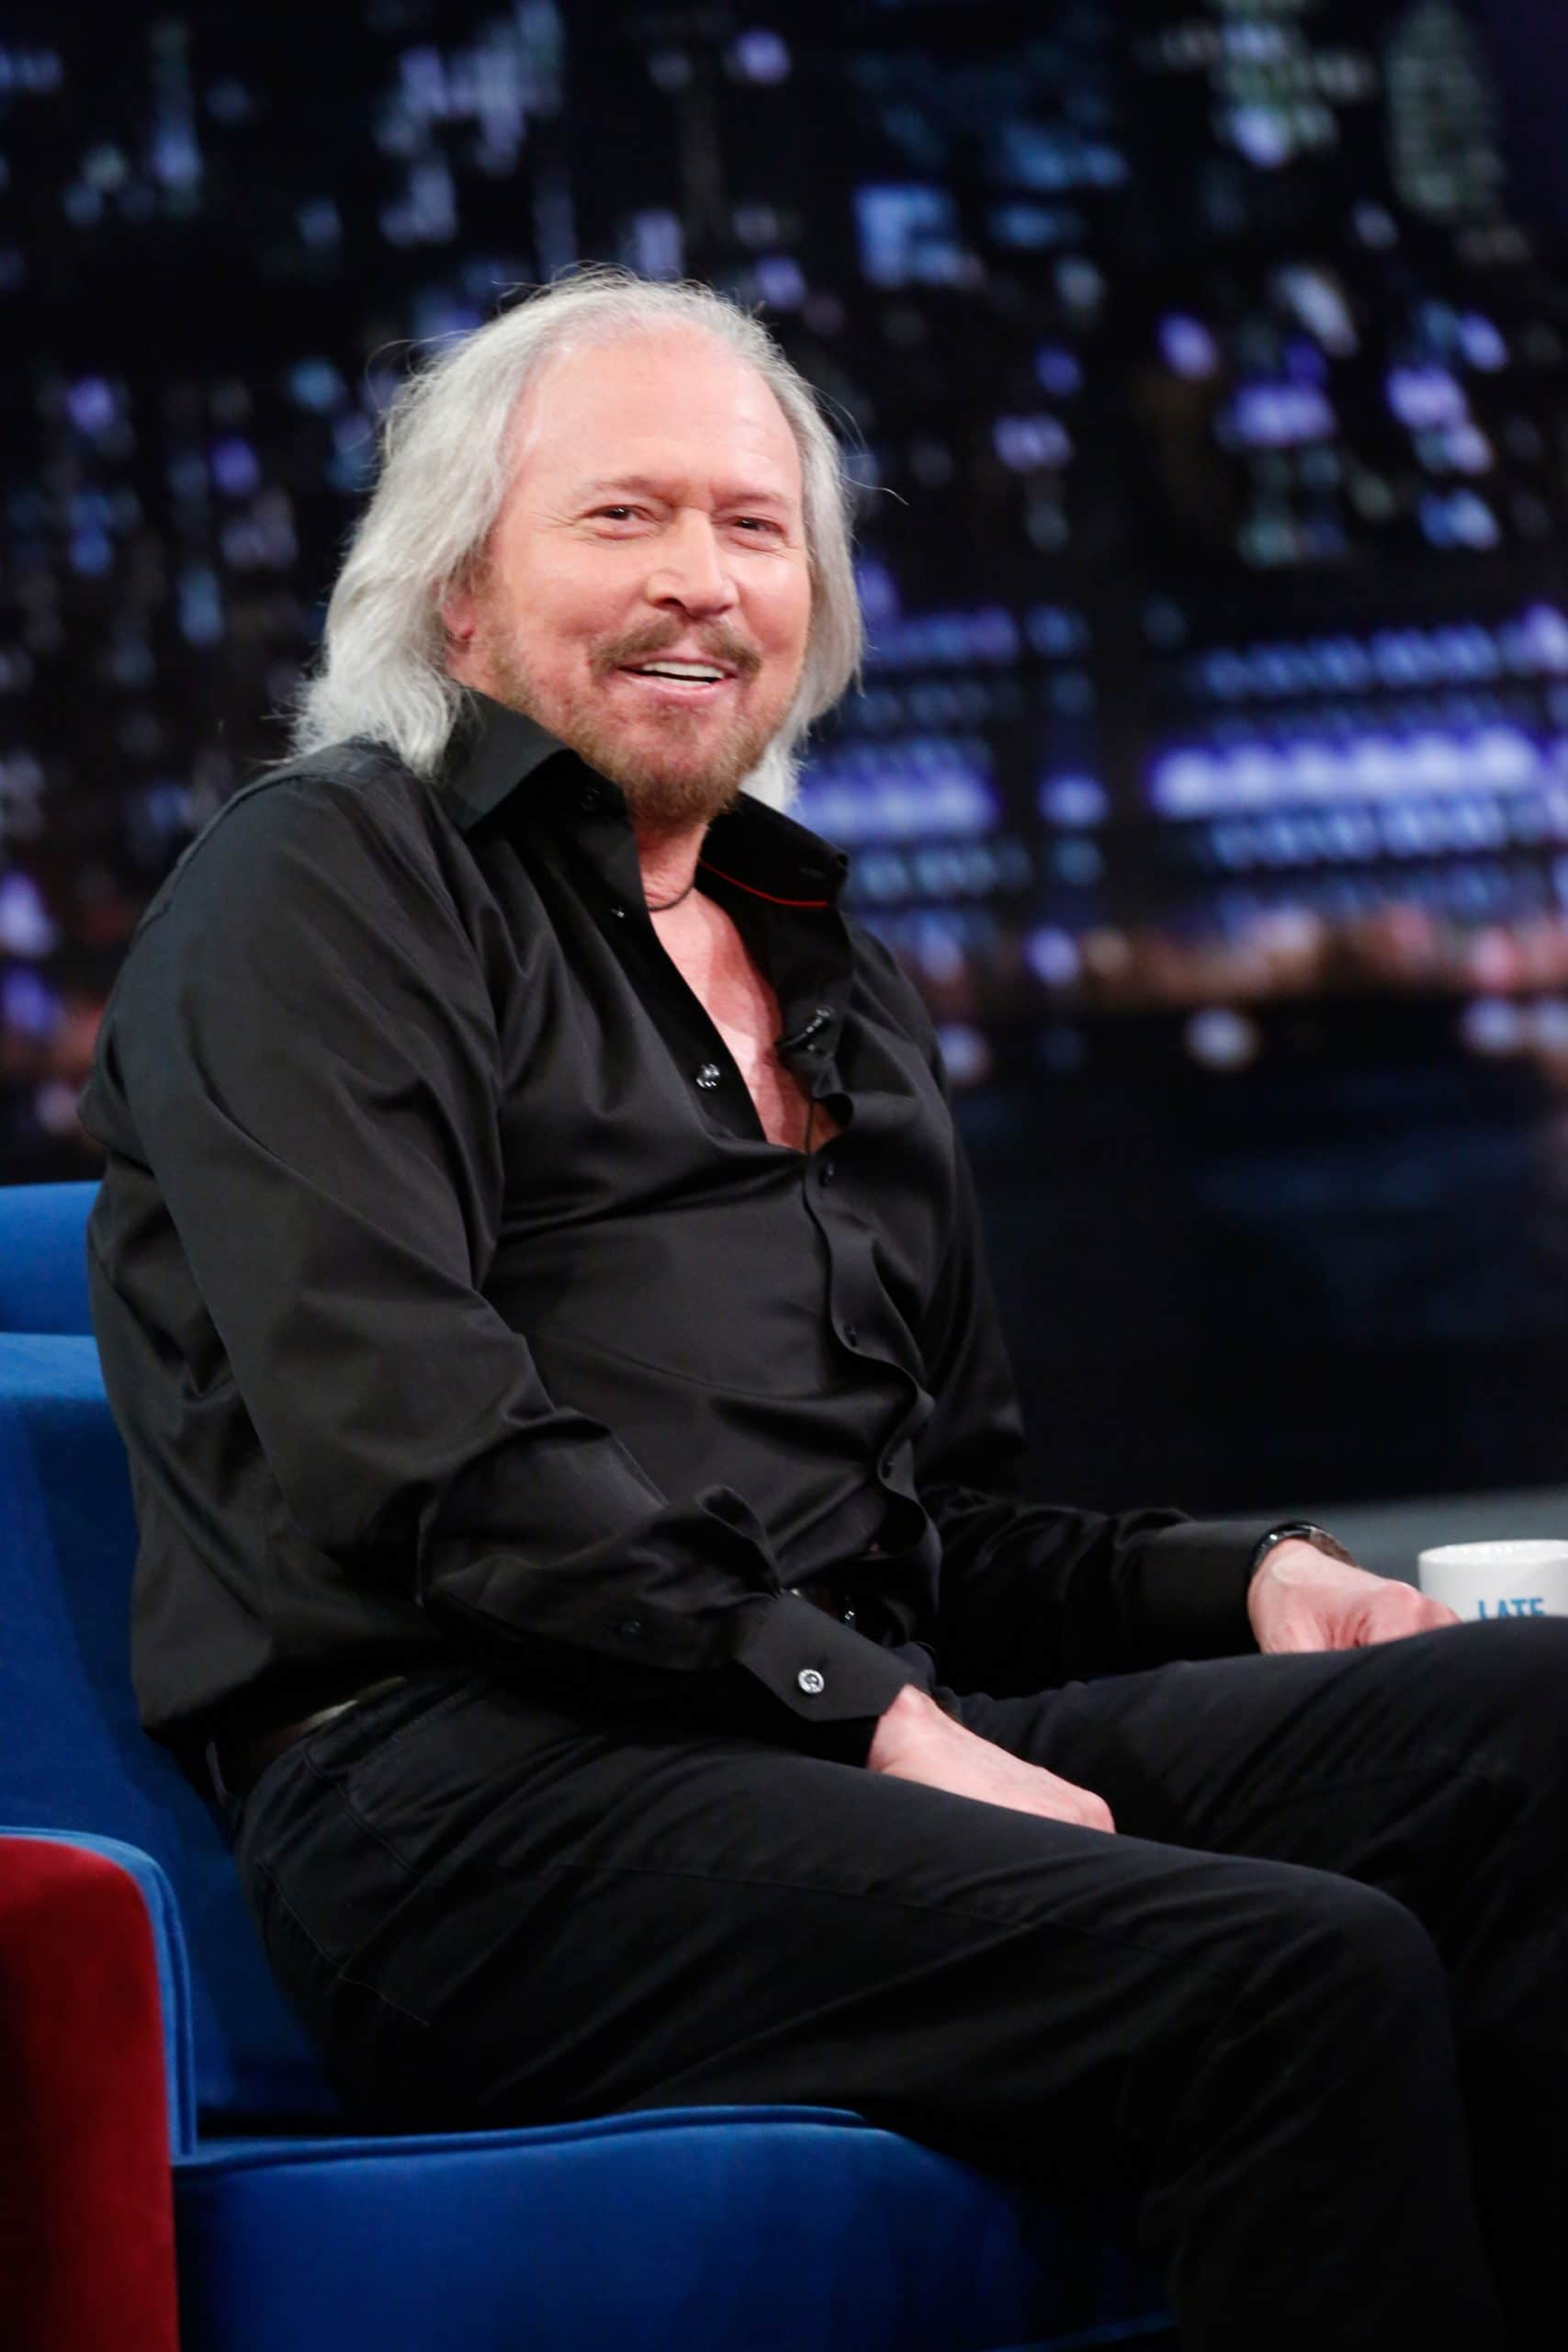 LATE NIGHT WITH JIMMY FALLON, Barry Gibb